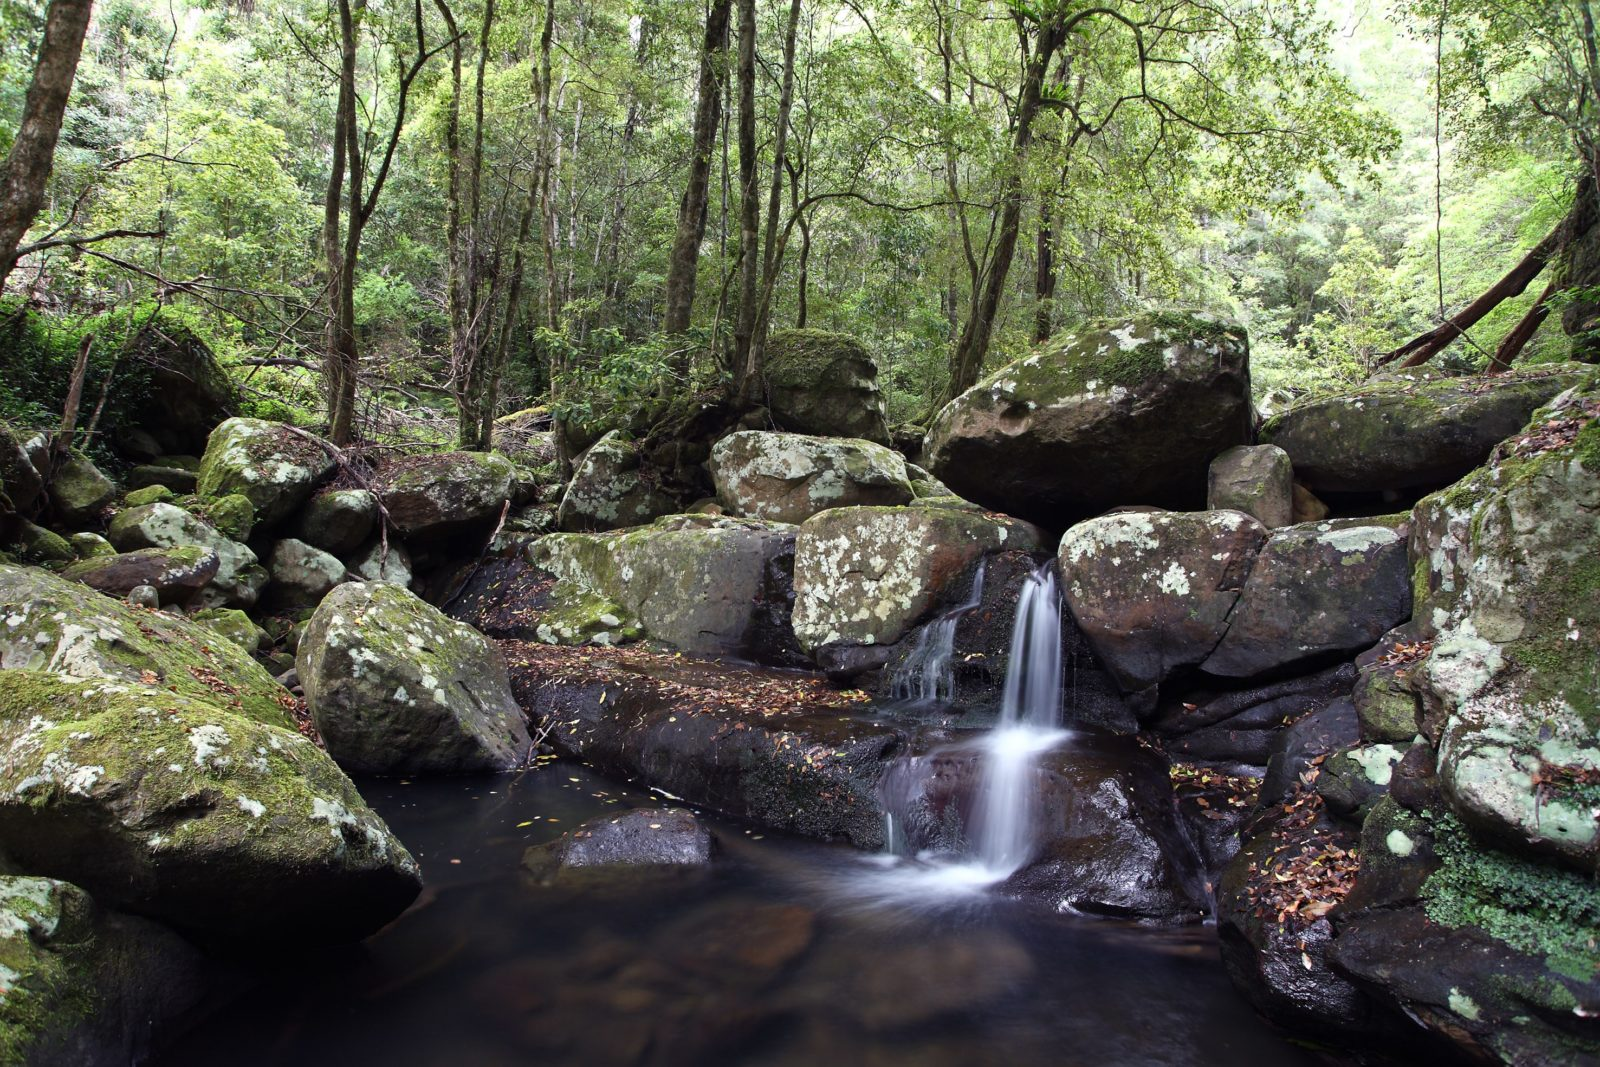 Water rushing over mossy rocks at Kangaroo River with bushland in the background